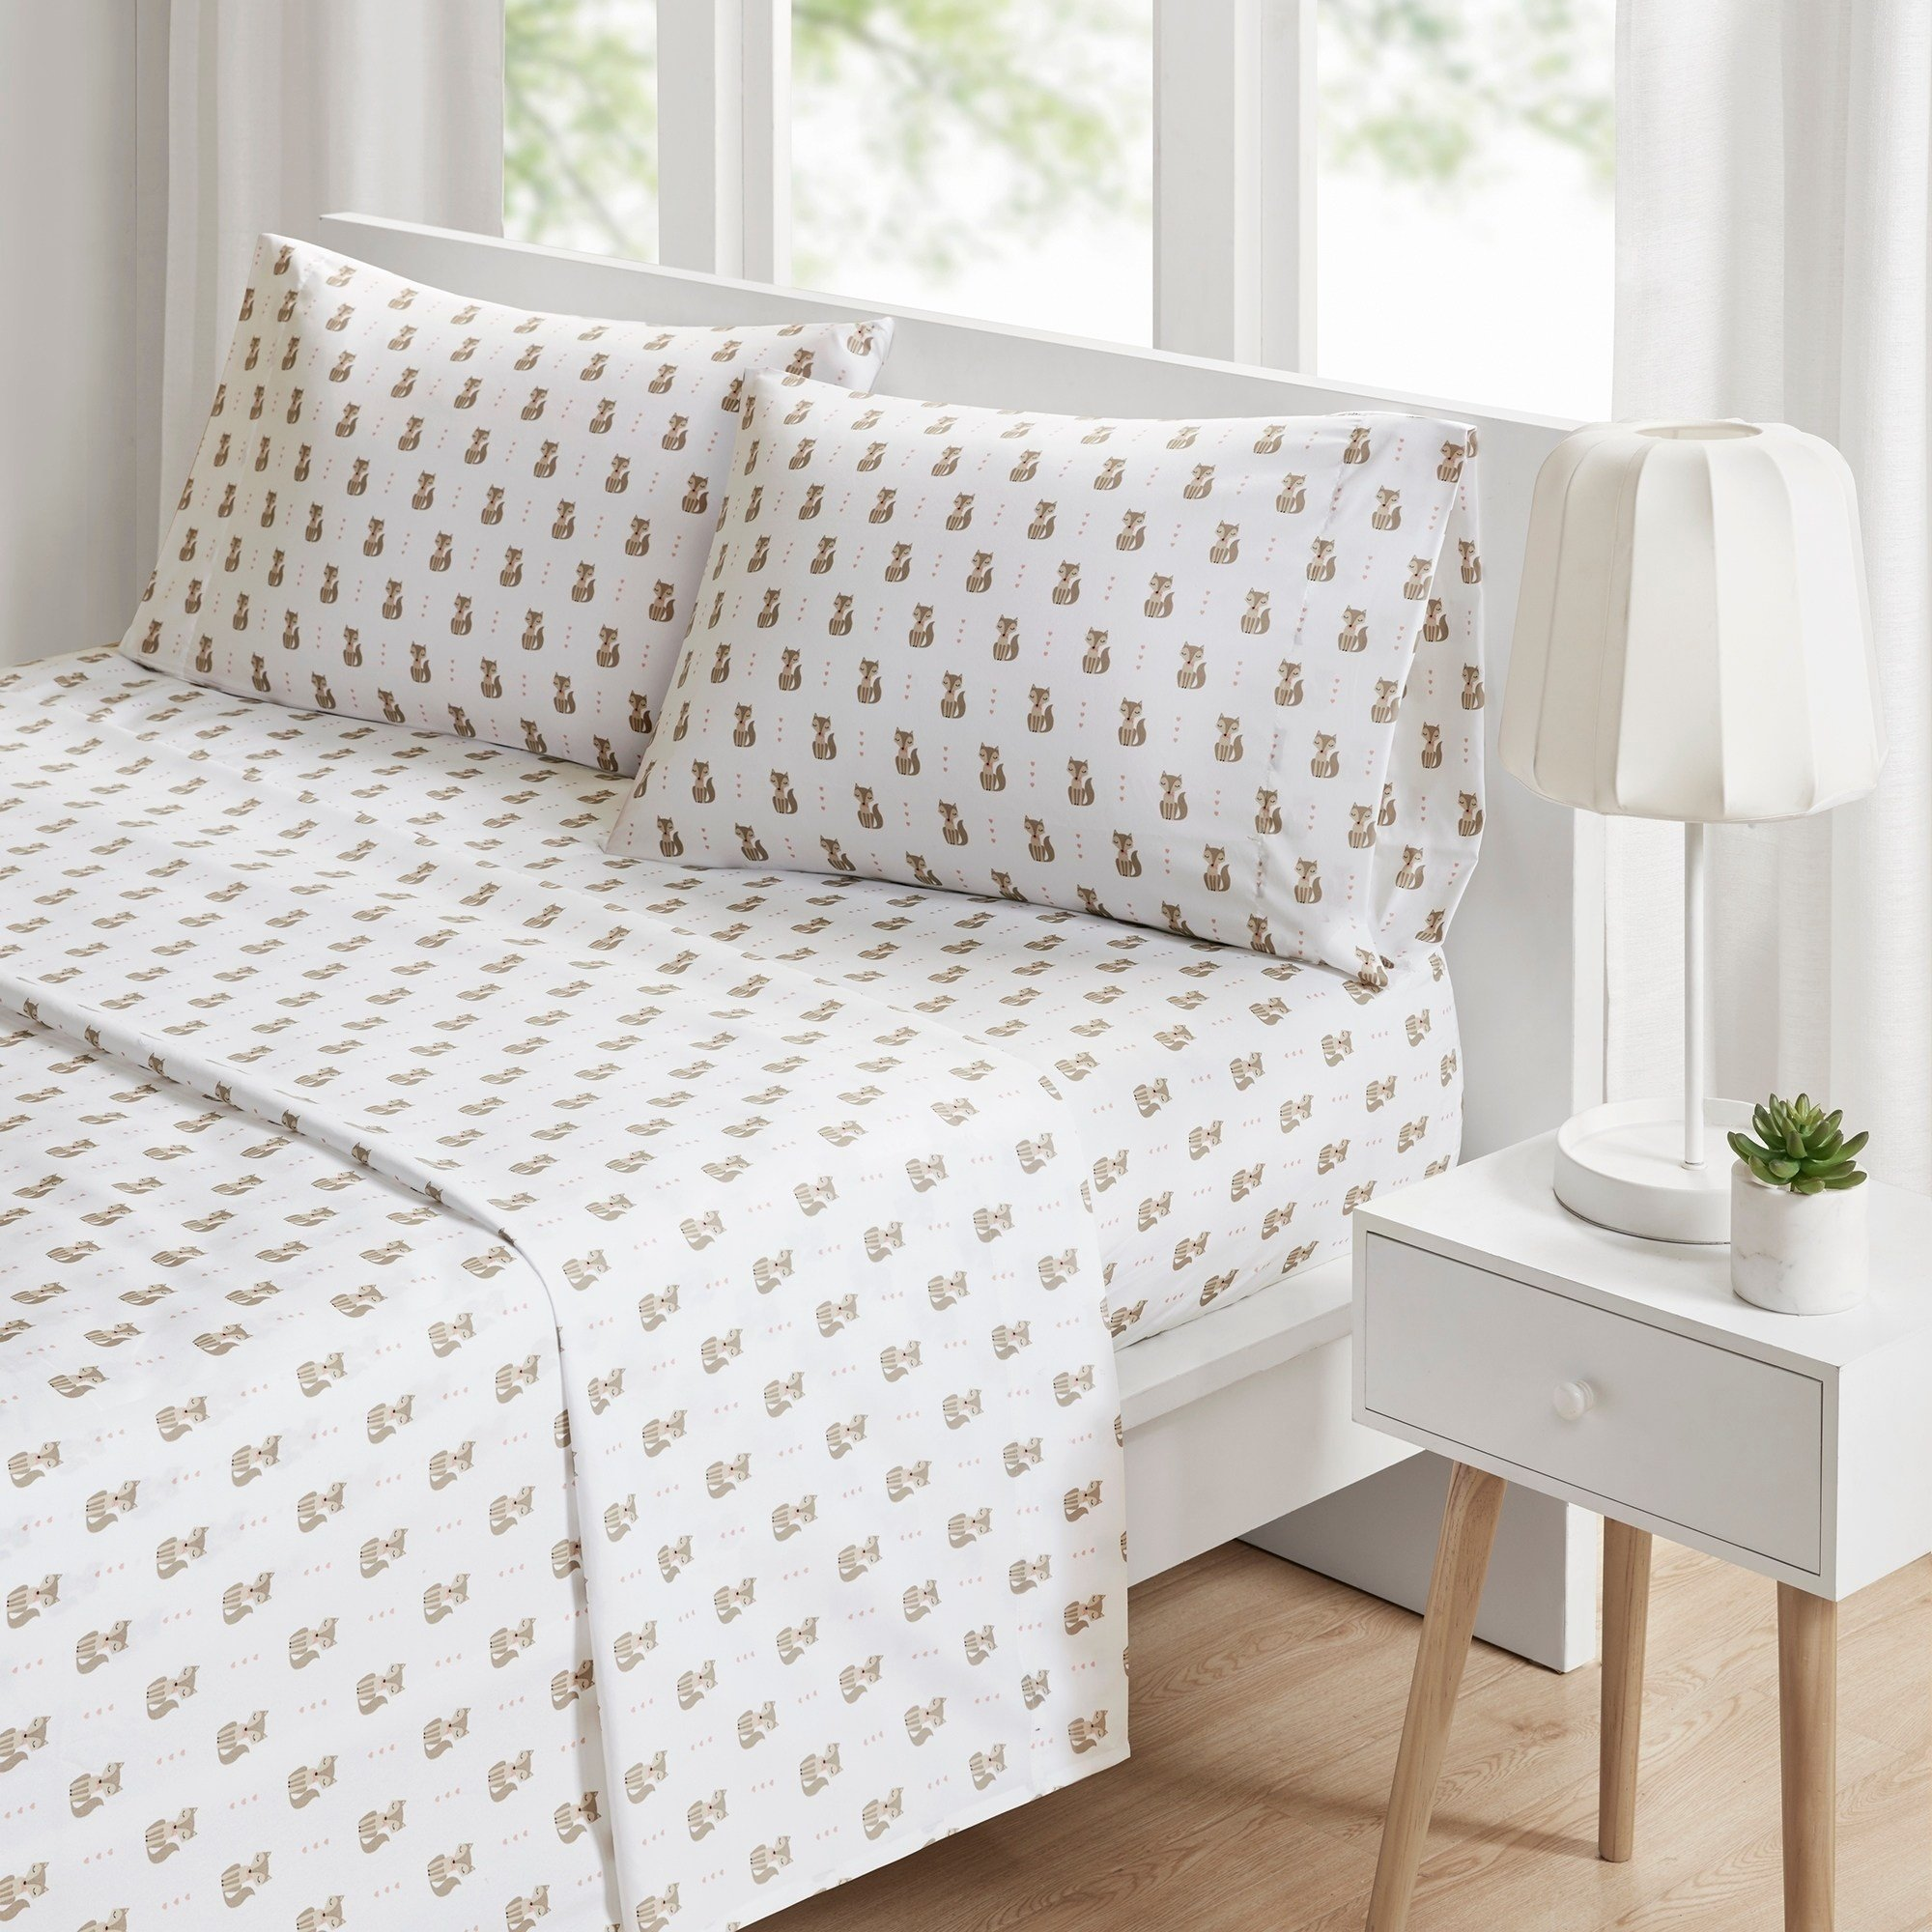 TN 3 Piece Off White Blue Cute Foxes Sheet Set Twin XL Sized, Cuddly Fox Bedding Pink Hearts Pattern Forest Animal Kids Childrens, Microfiber Polyester by TN (Image #2)